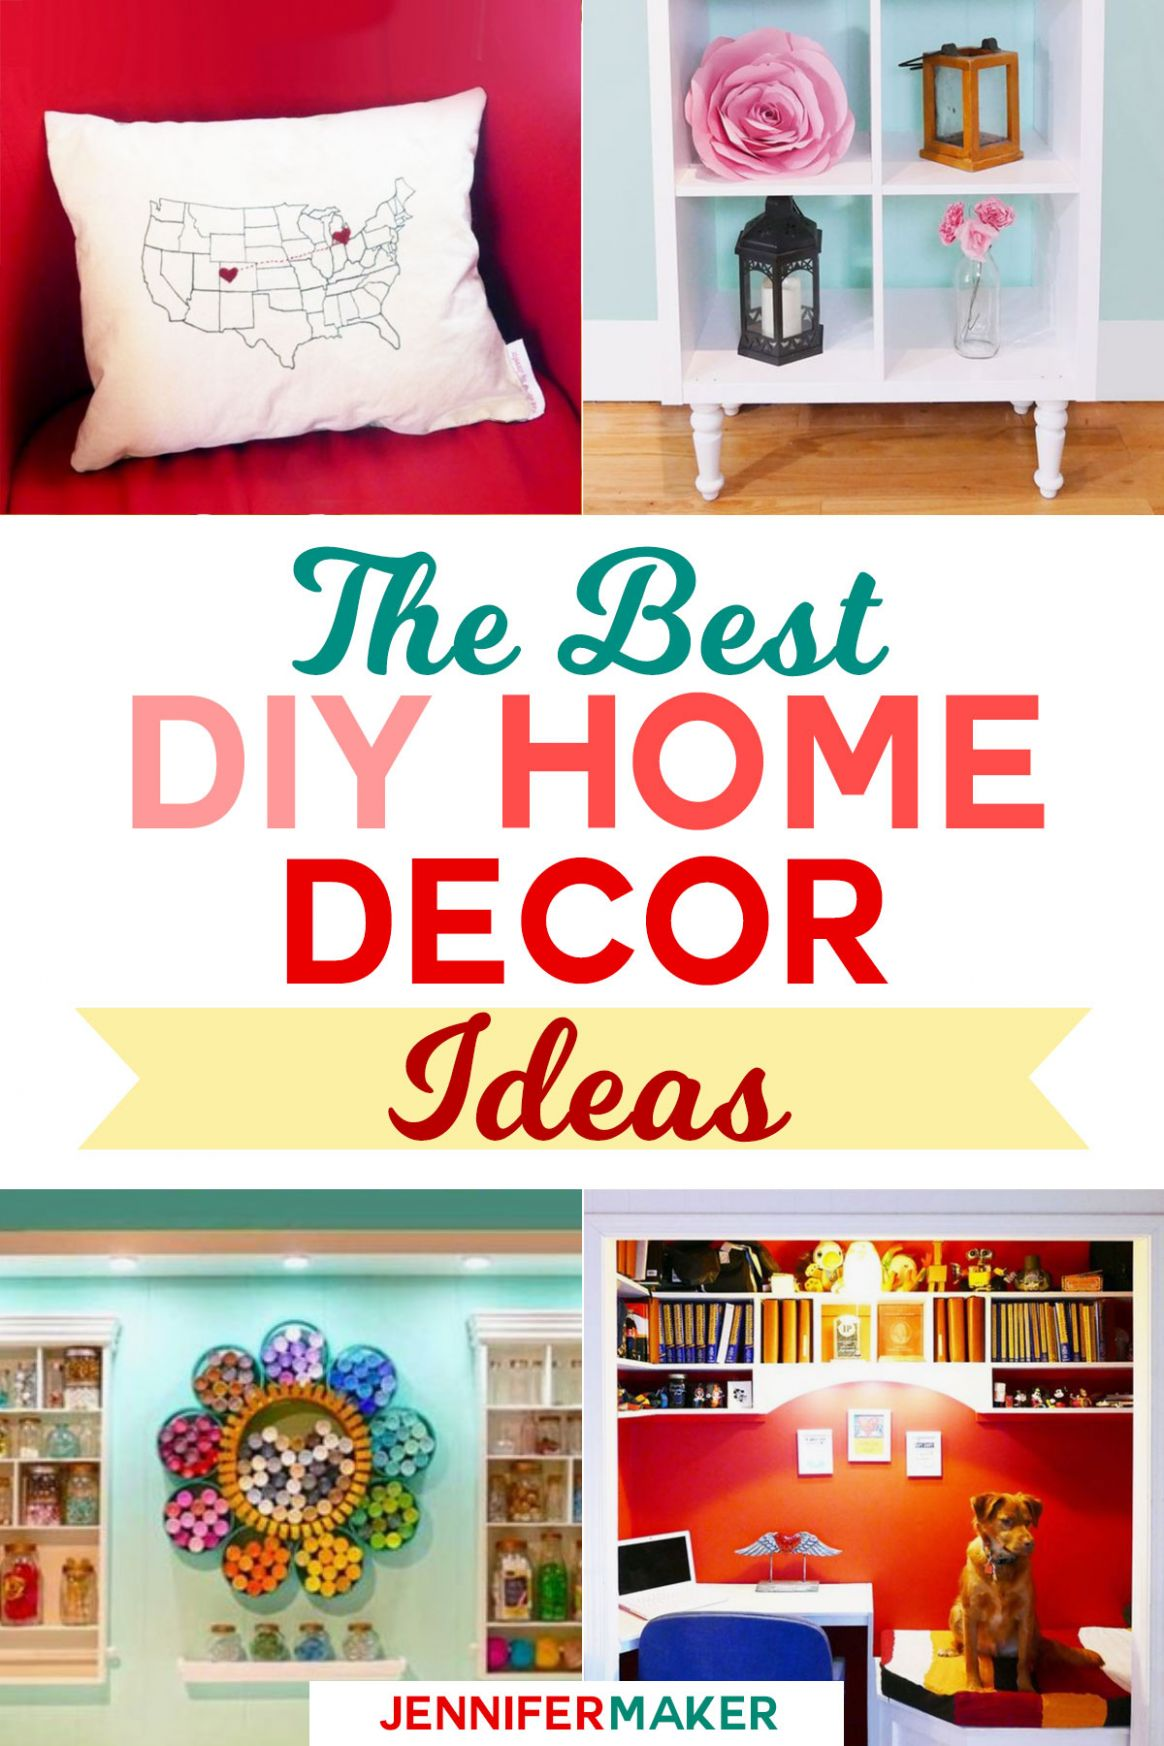 DIY Home Decor: My Favorite Projects and Ideas - Jennifer Maker - diy home decor tutorials